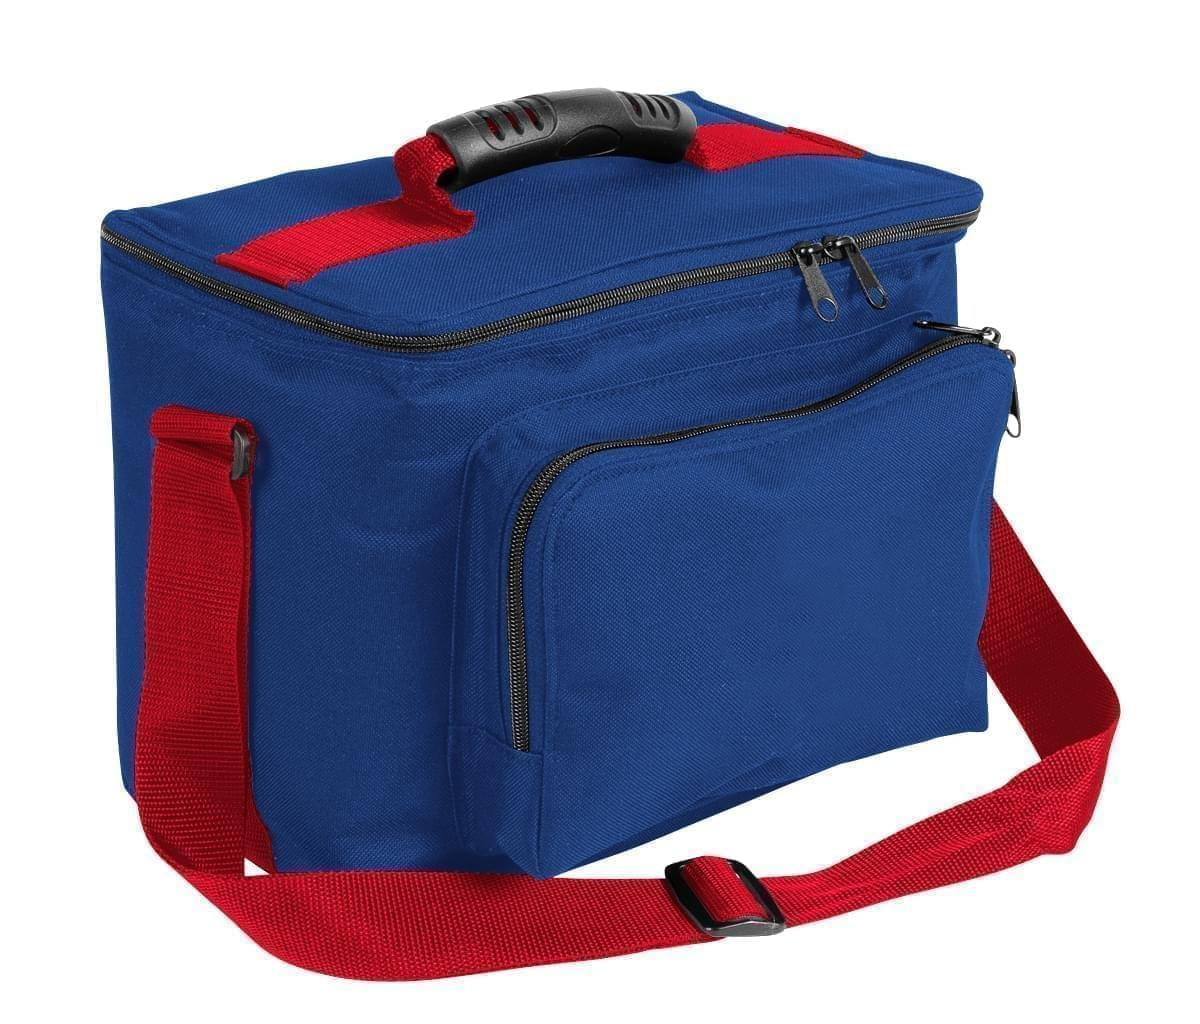 USA Made Nylon Poly Lunch Coolers, Royal Blue-Red, 11001161-A02